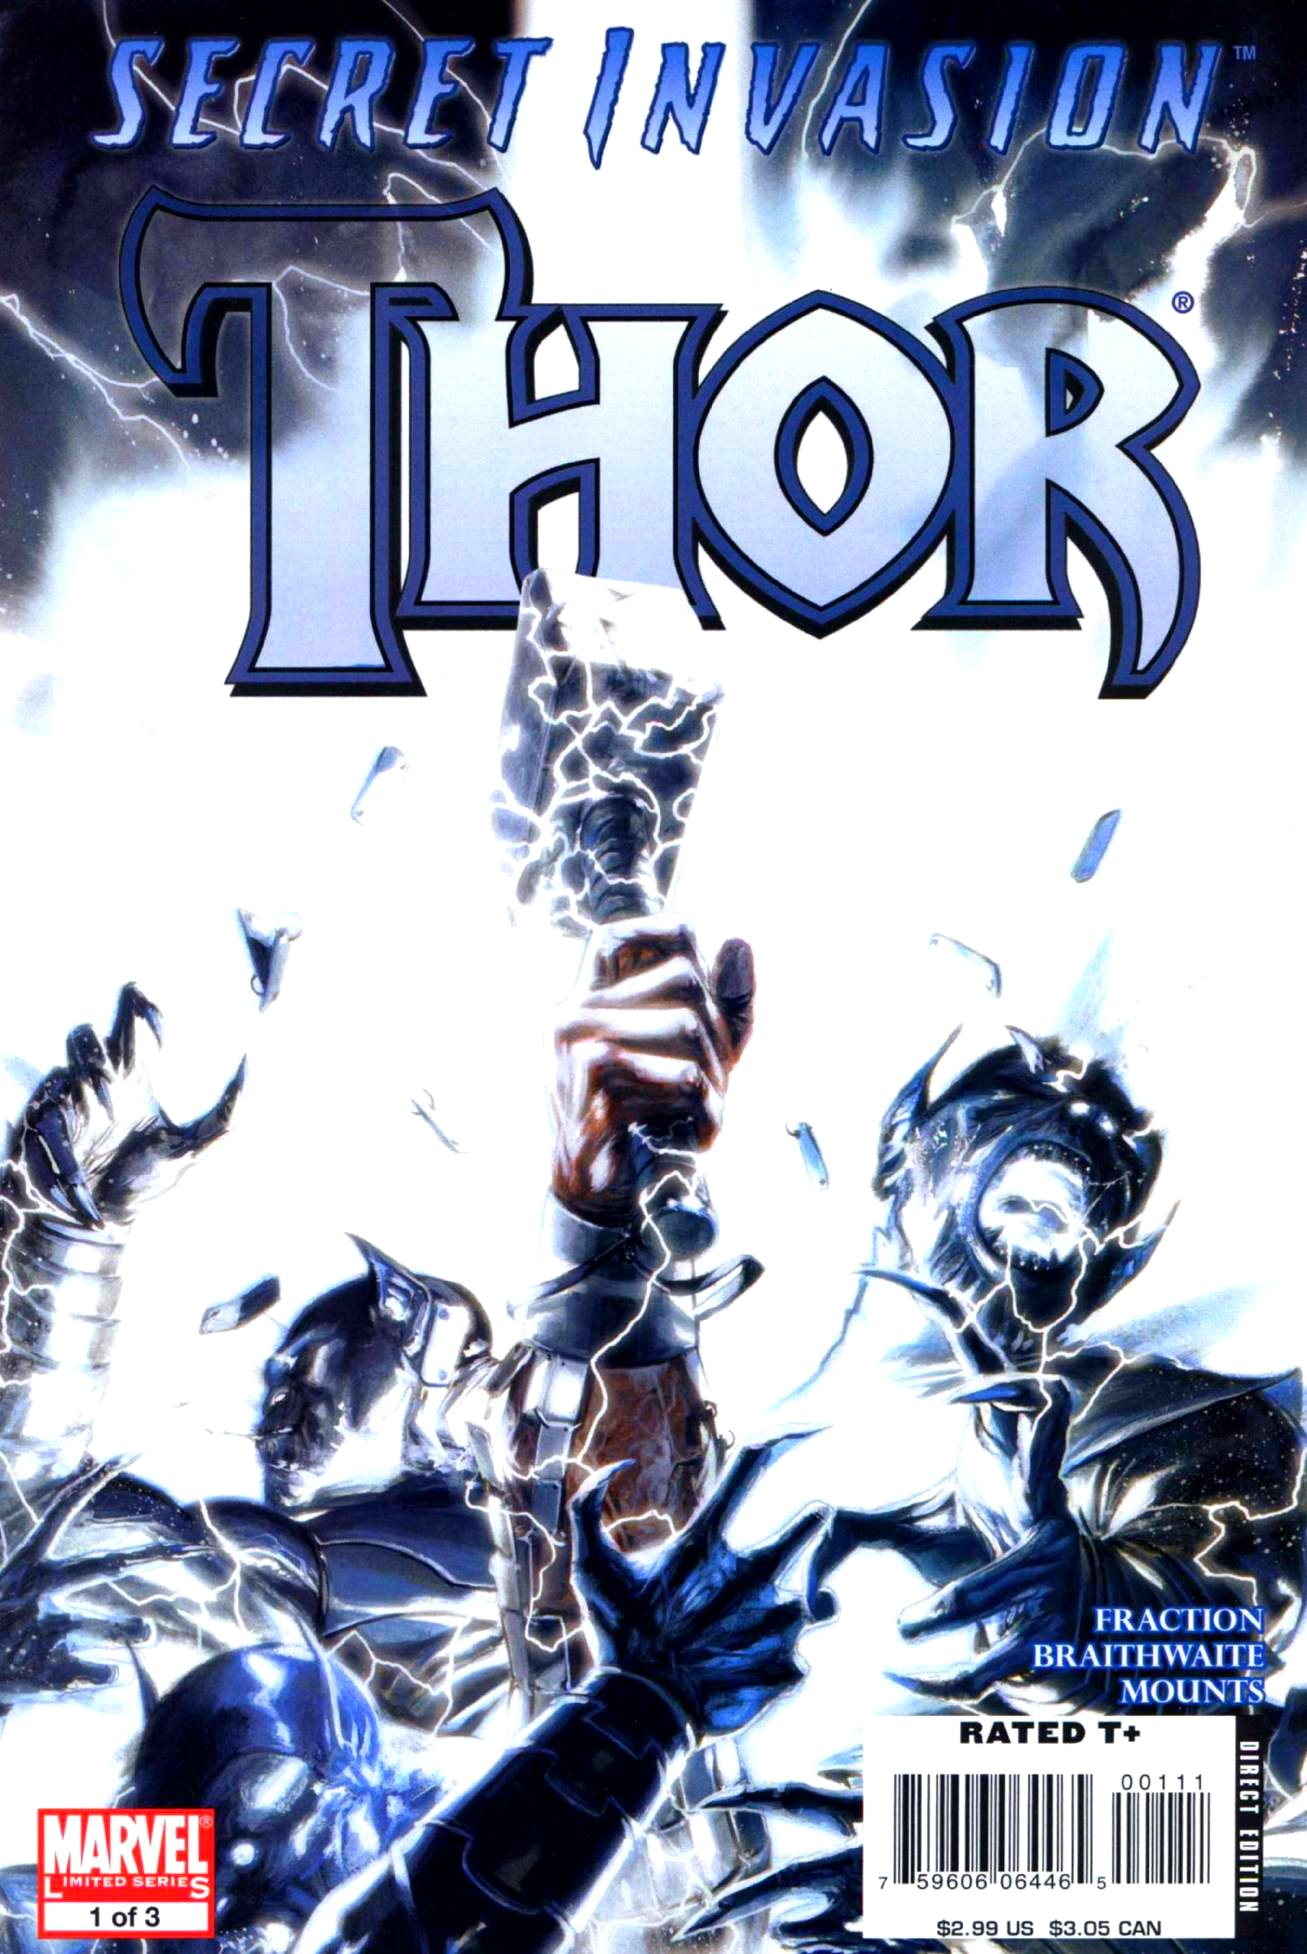 Read online Secret Invasion: Thor comic -  Issue #1 - 1